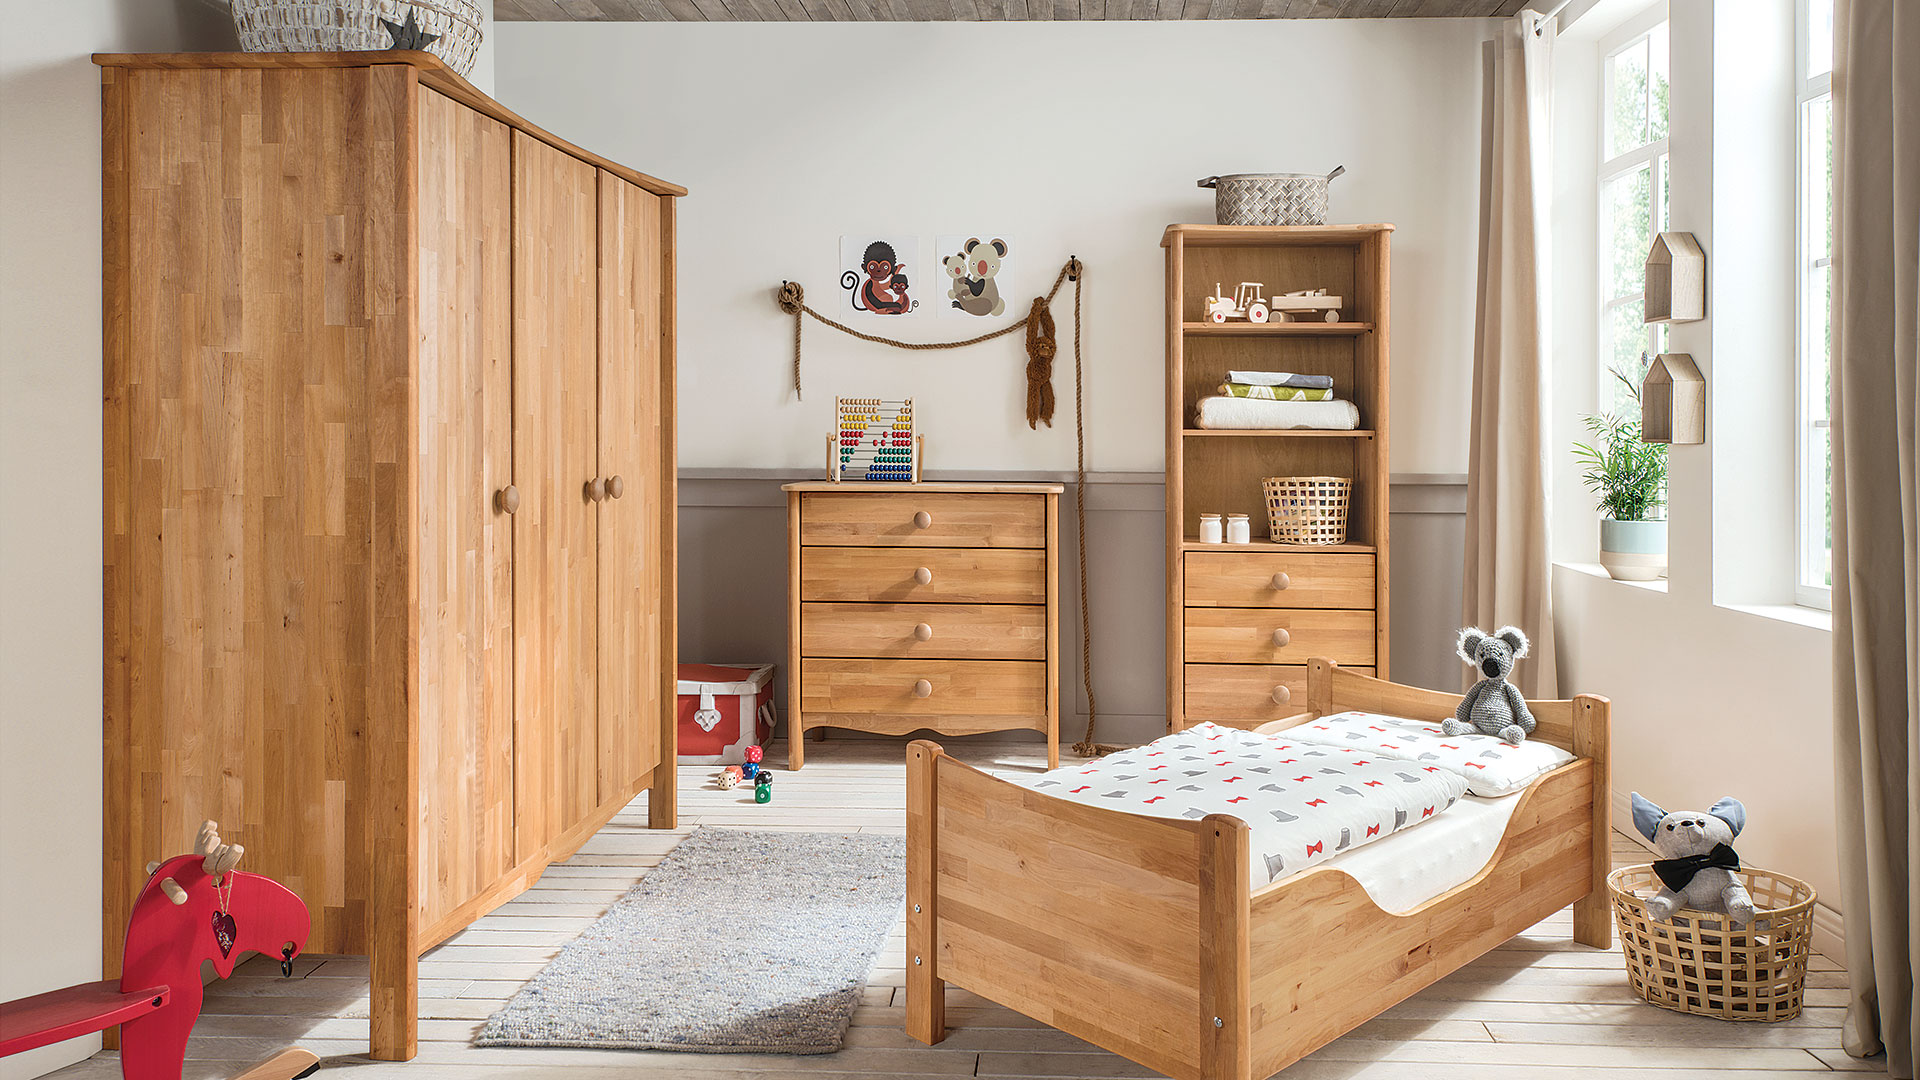 kleiderschrank lino perfekt f r das kinderzimmer. Black Bedroom Furniture Sets. Home Design Ideas